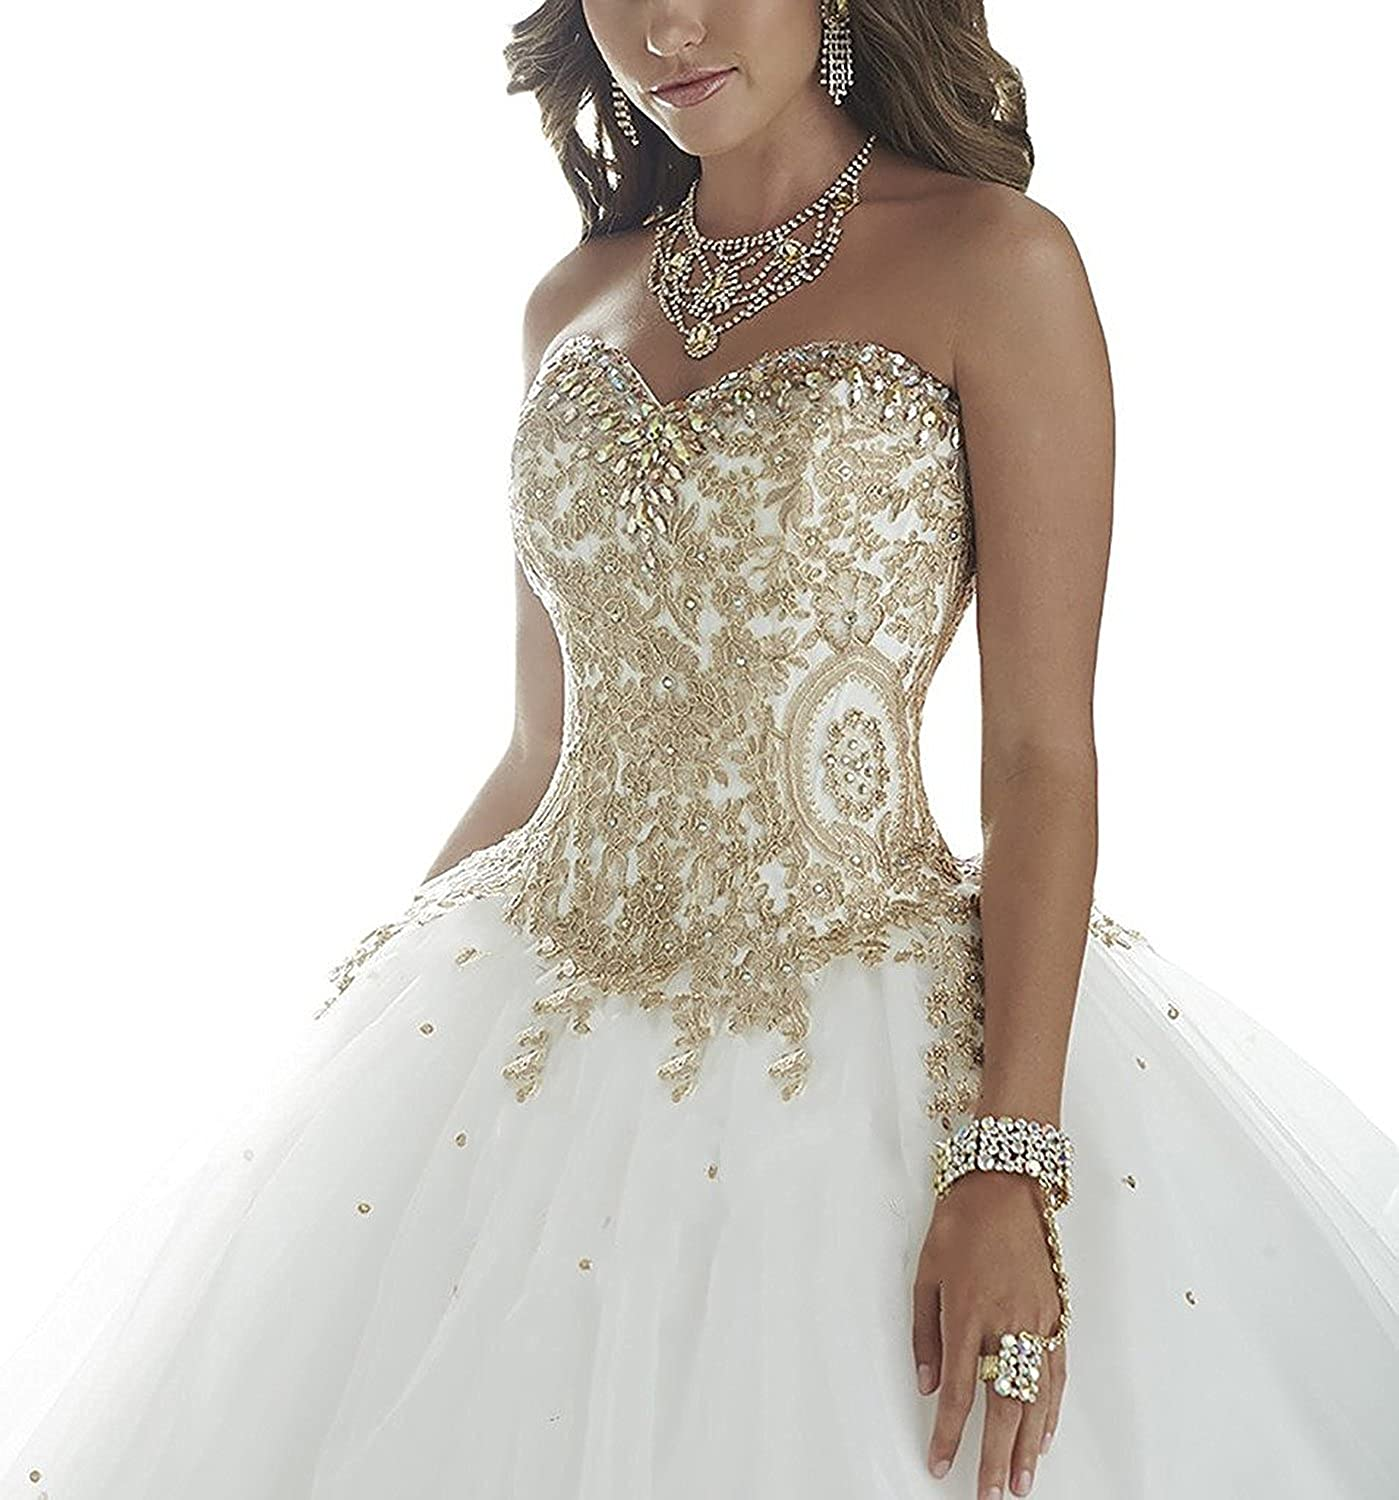 XSWPL Women's Crystal gold Applique Ball Gowns Tulle Wedding Dresses White